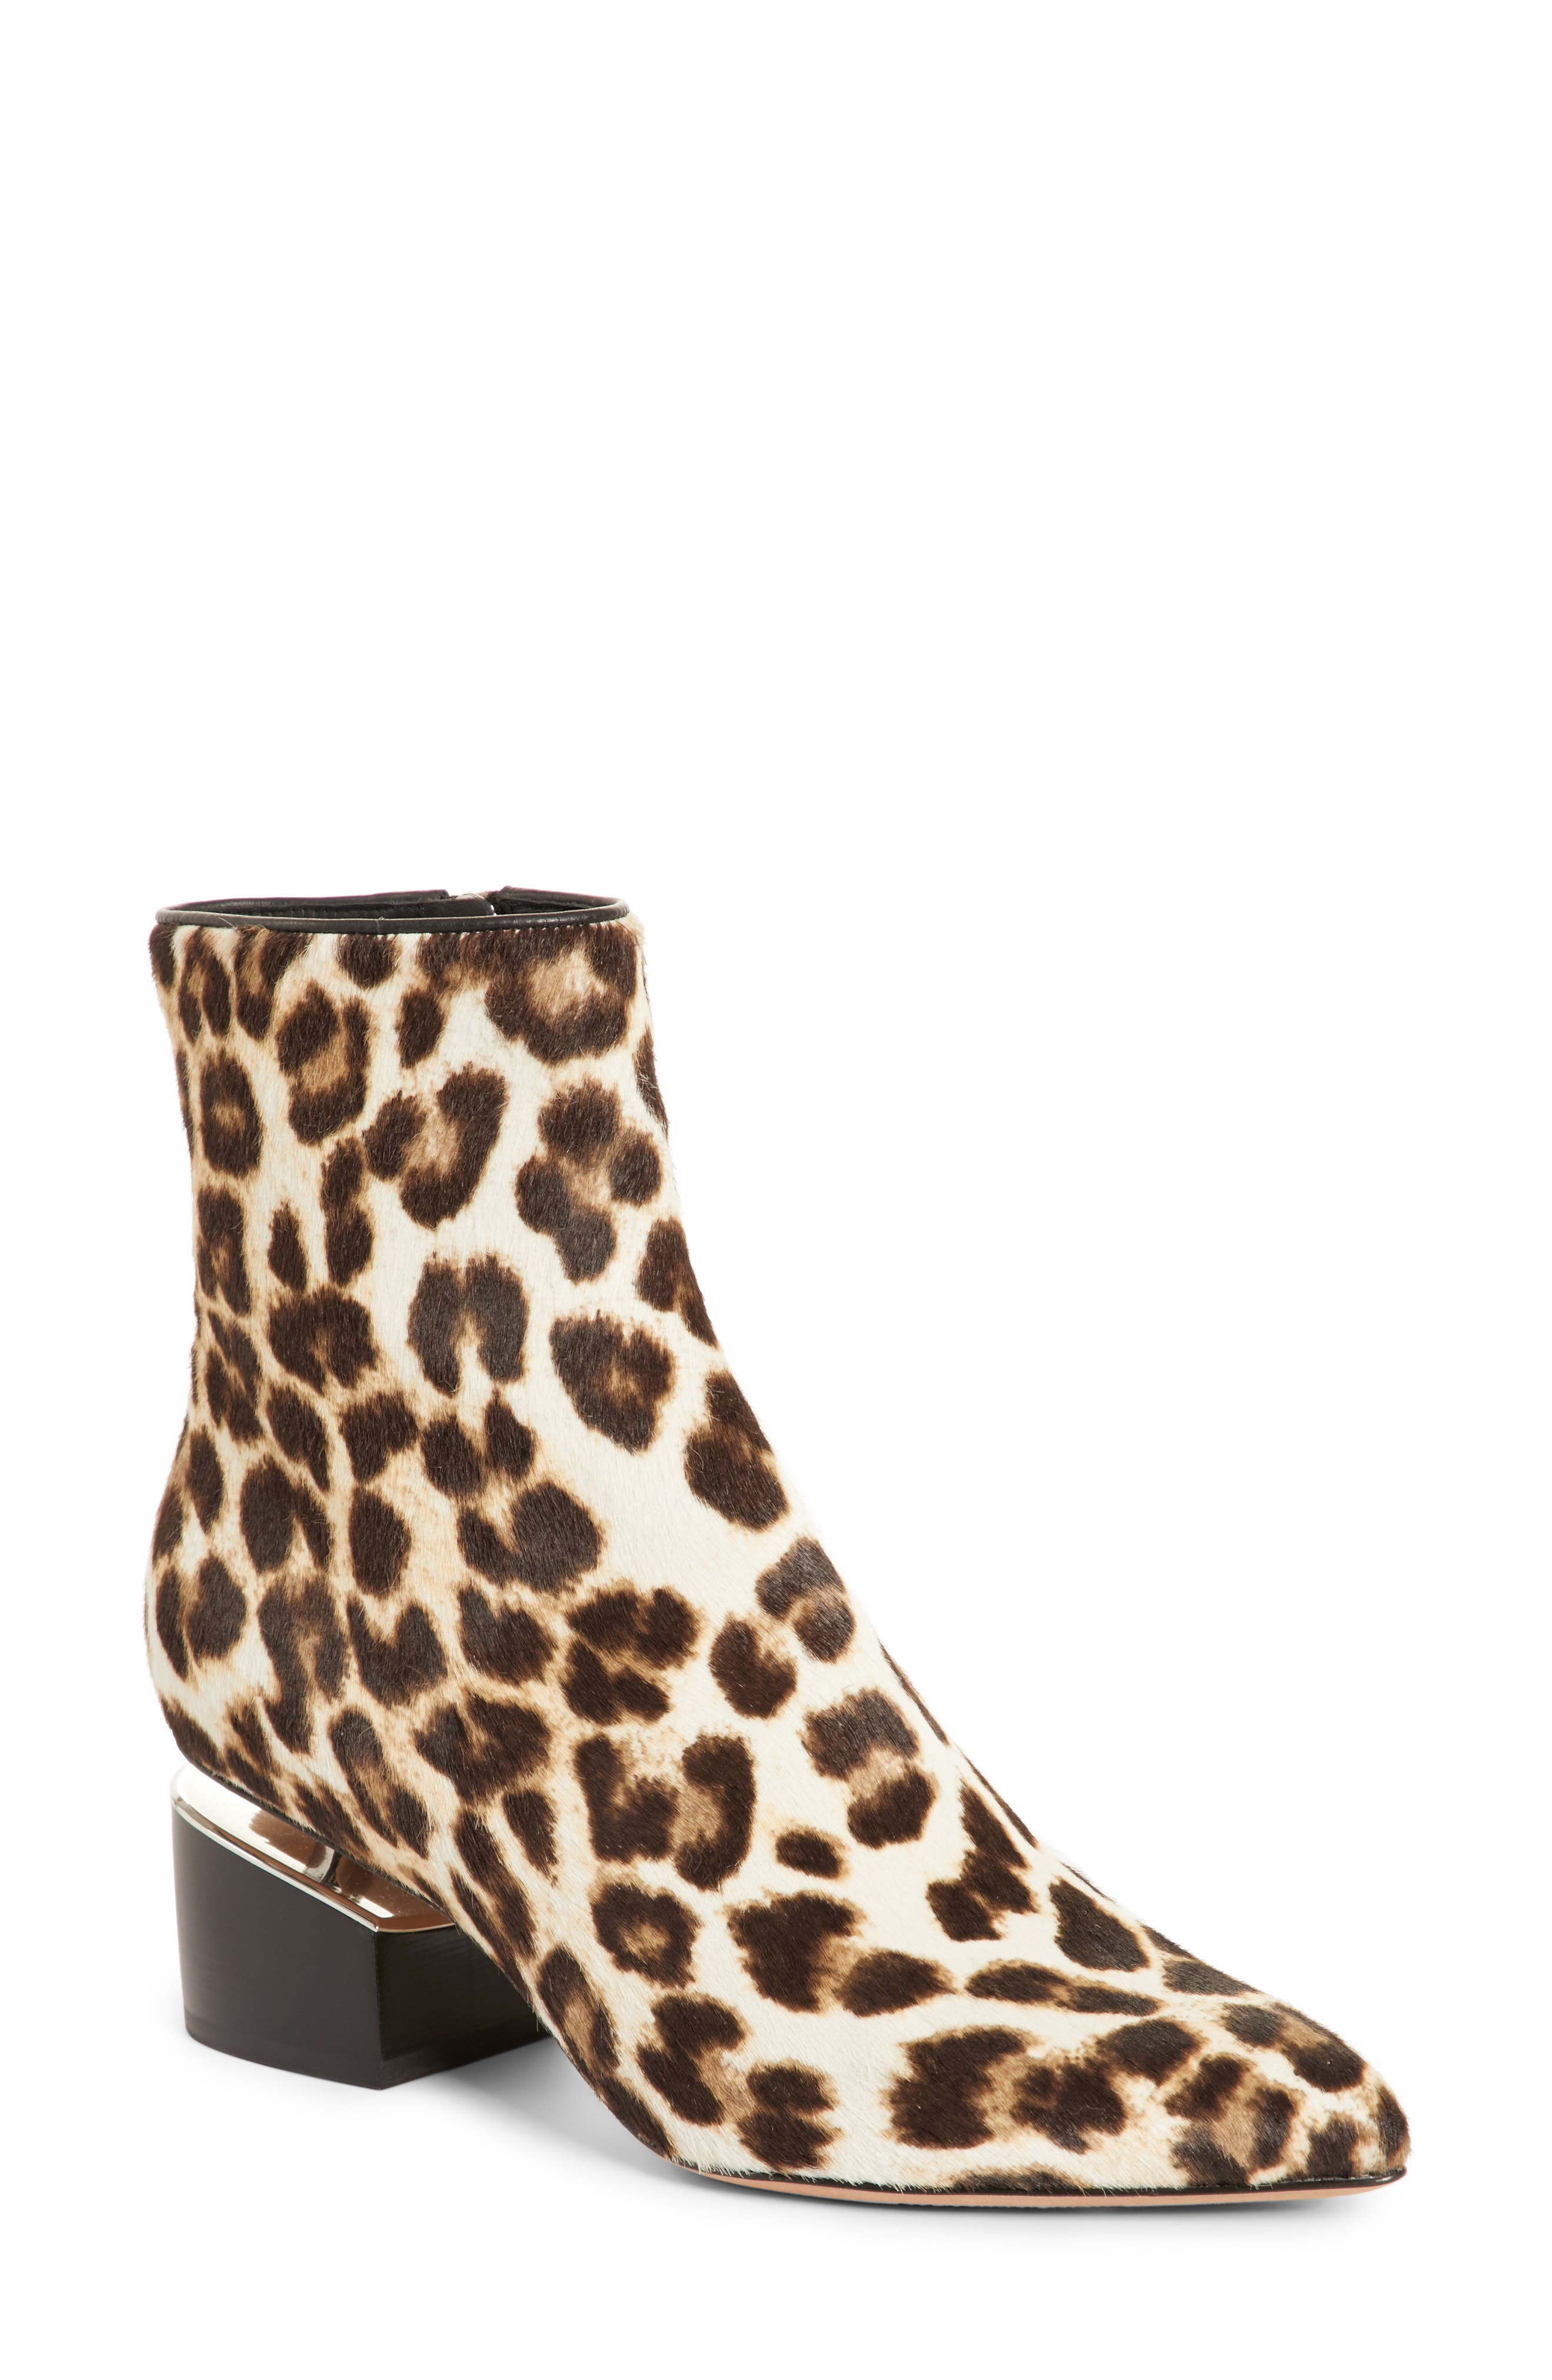 Jude Genuine Calf Hair Bootie,                         Main,                         color, Leopard Print